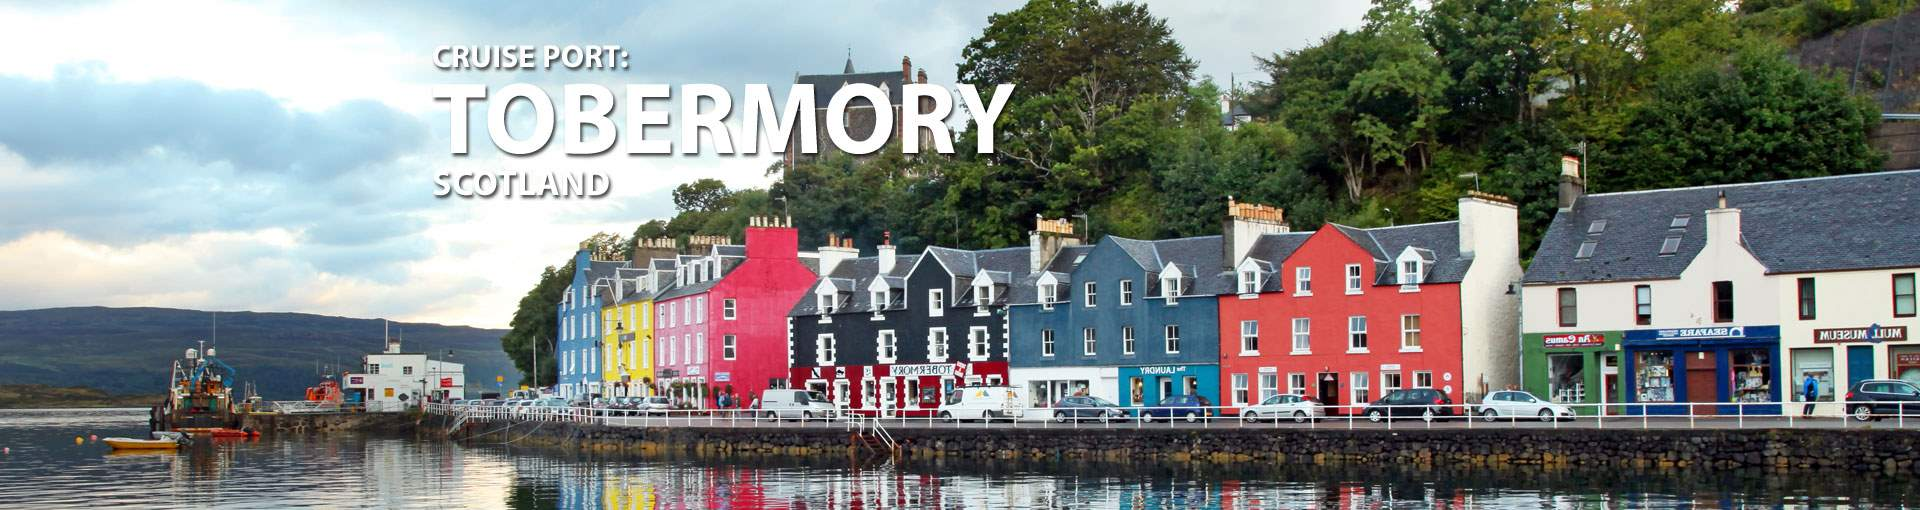 Cruises to Tobermory, Scotland